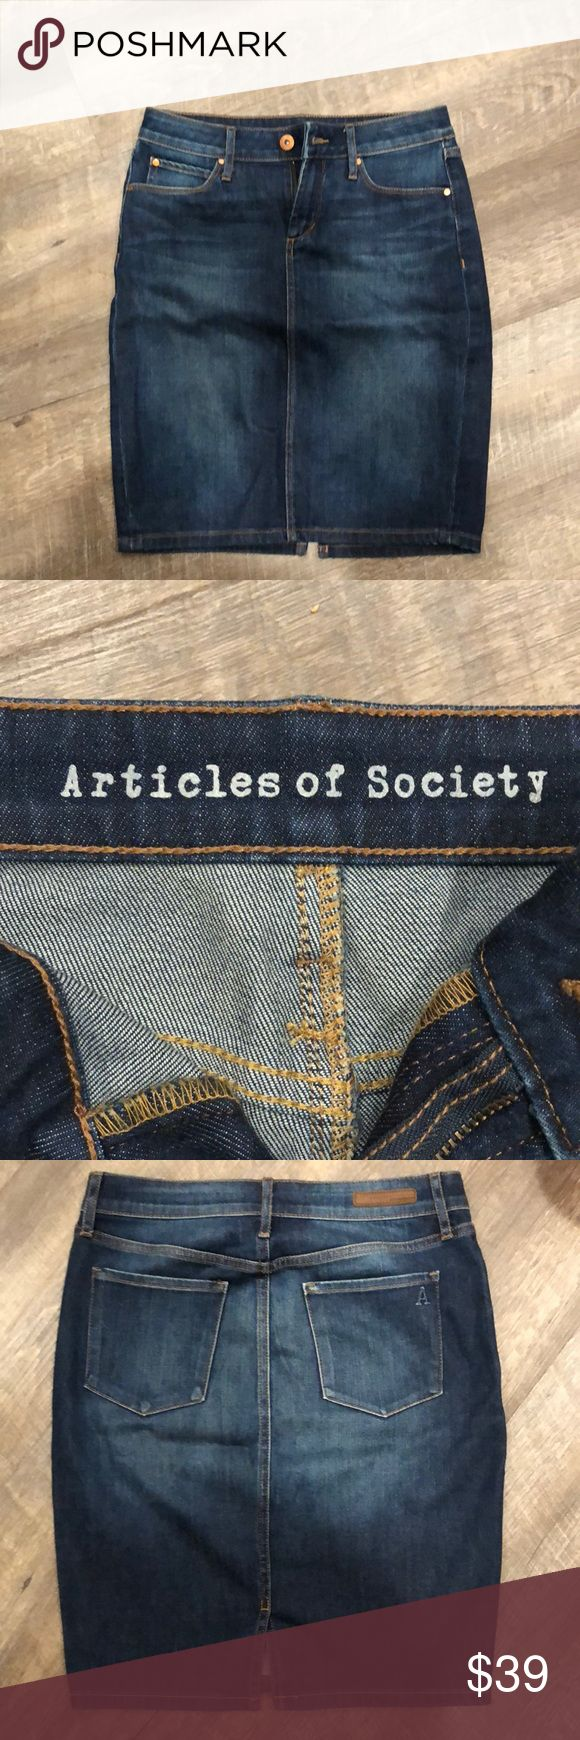 """Articles of Society Size 0/25 Midi Skirt This adorable Articles of Society Size 0/25 Midi Skirt is perfect for spring! You'll love its 20.5"""" length which can be dressed up or down. Please note it does have whiskering both on front and back of the denim, so it is not uniform in color and has a bit of stretch. It comes from a pet and smoke free home and is ready to wear right out of the box. Enjoy! 💐 Articles Of Society Skirts Midi"""